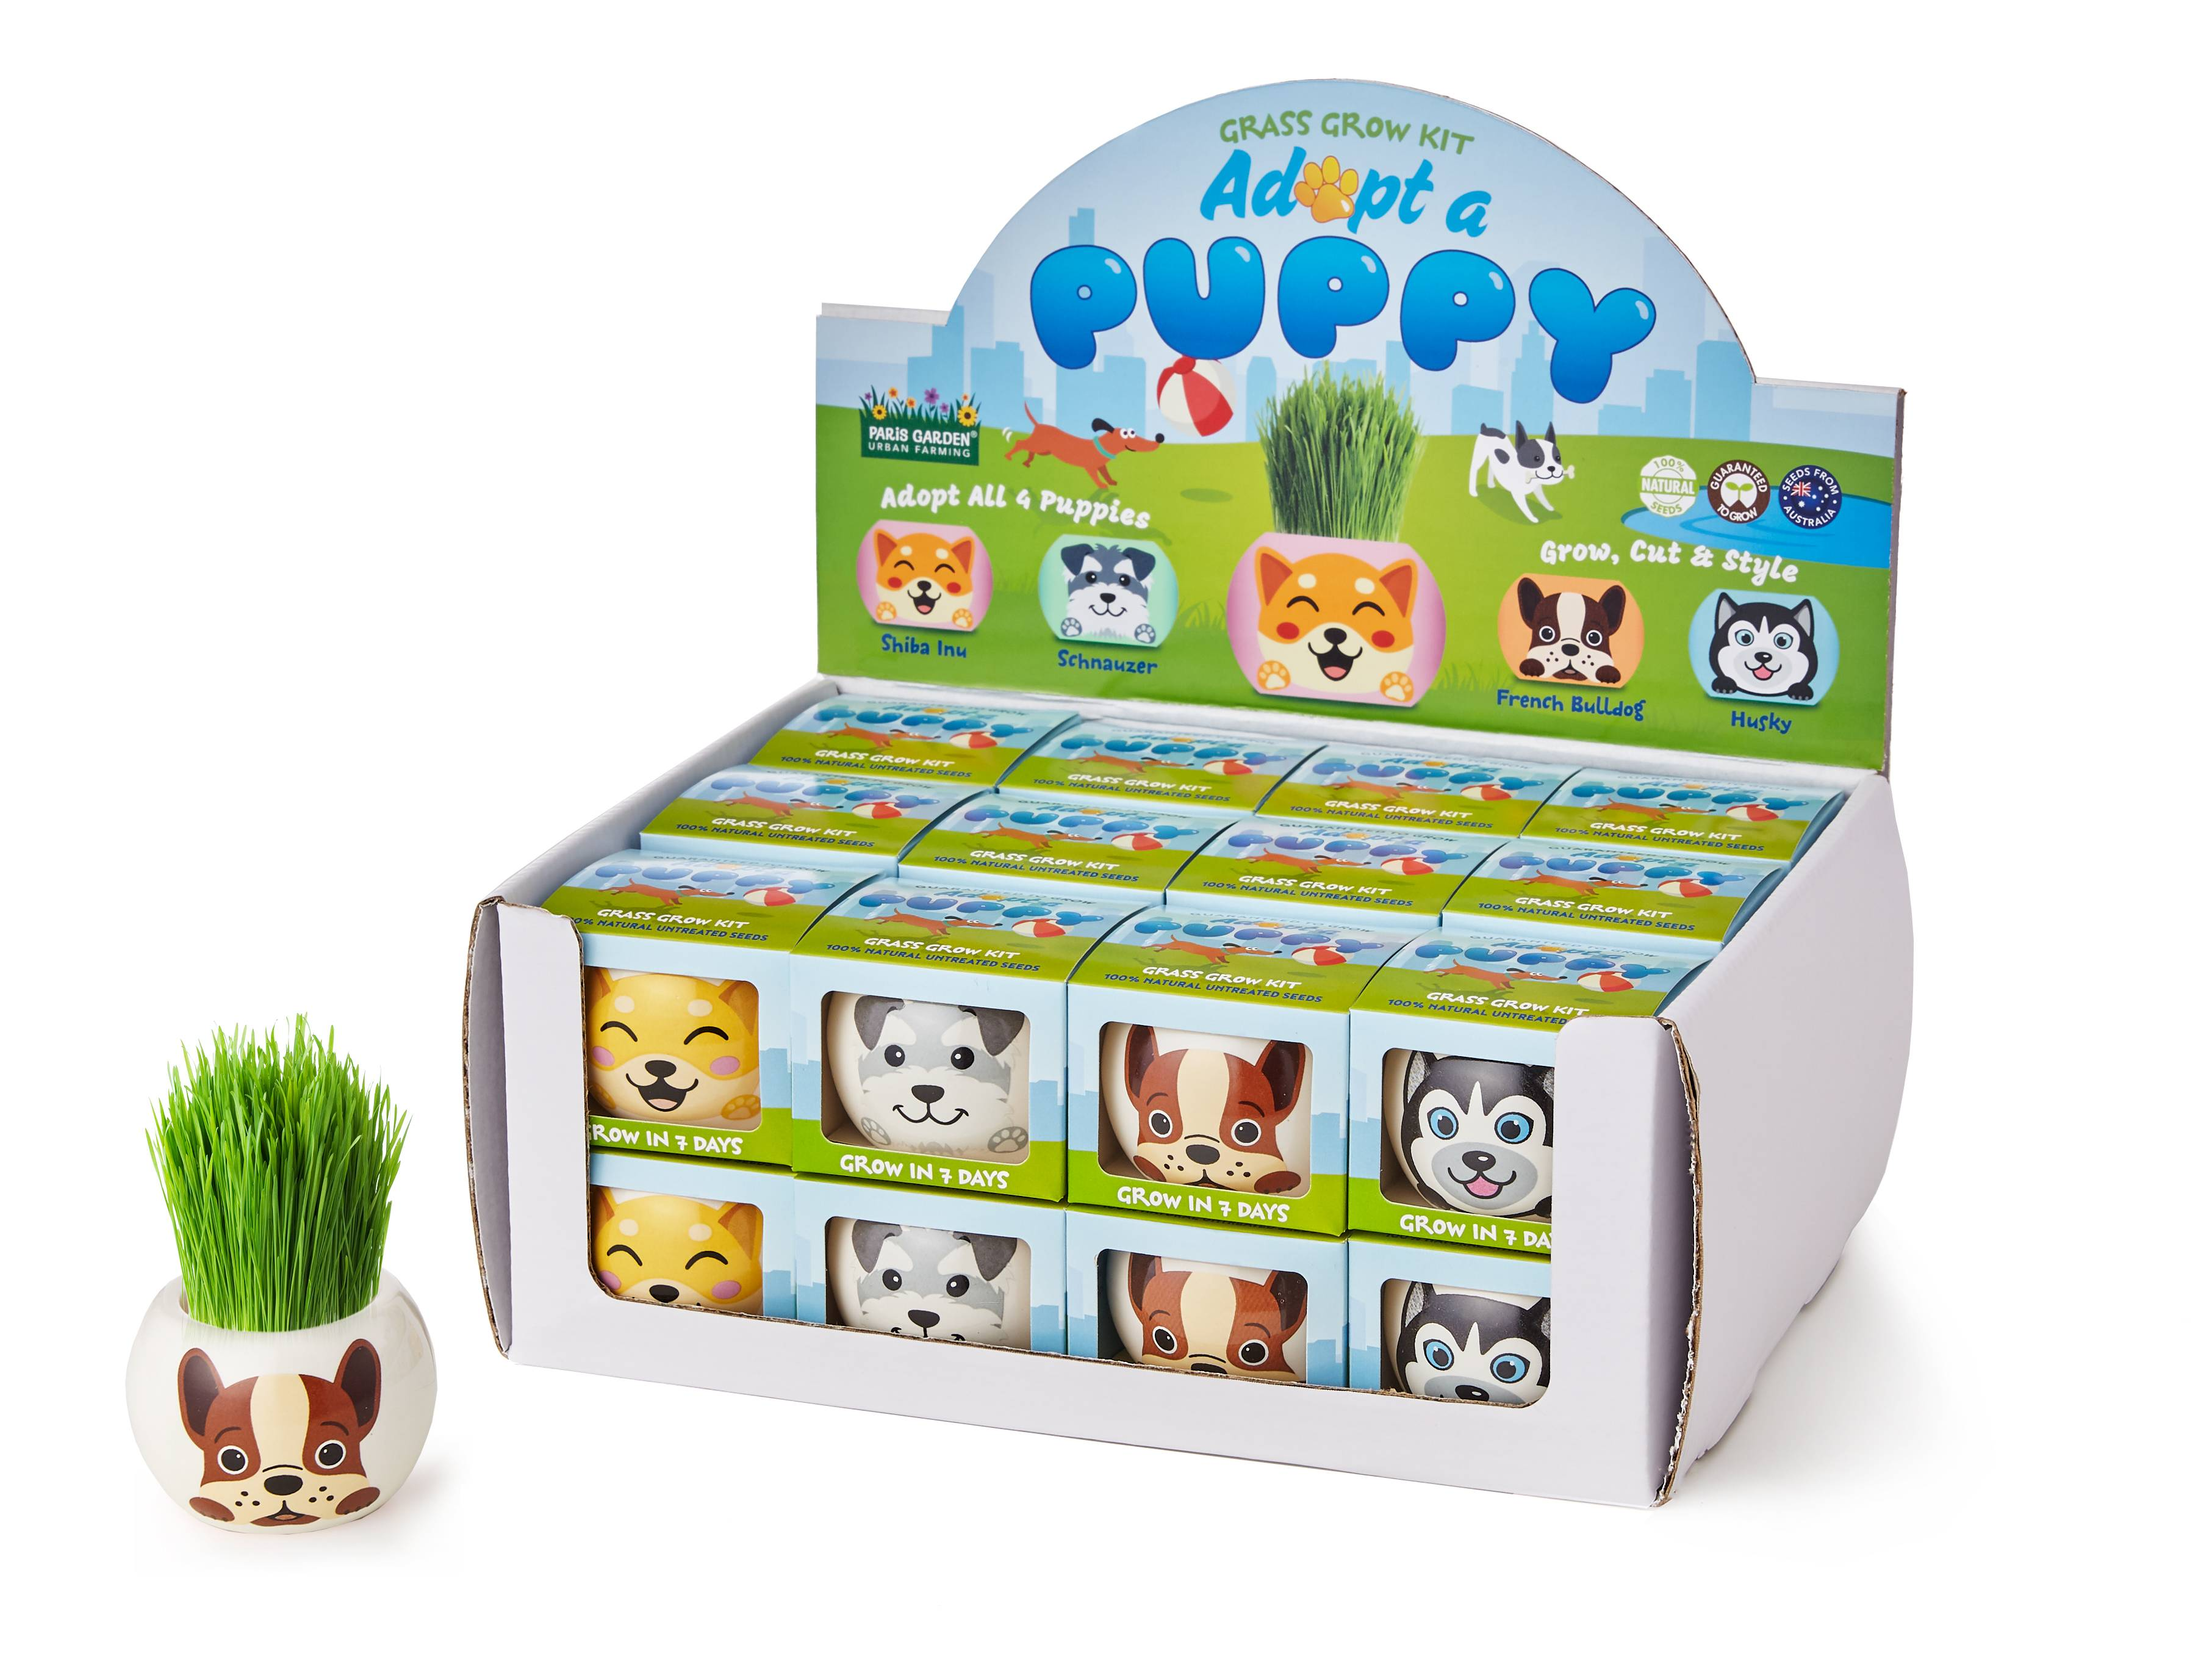 Grass Hair Kits Adopt a Puppy